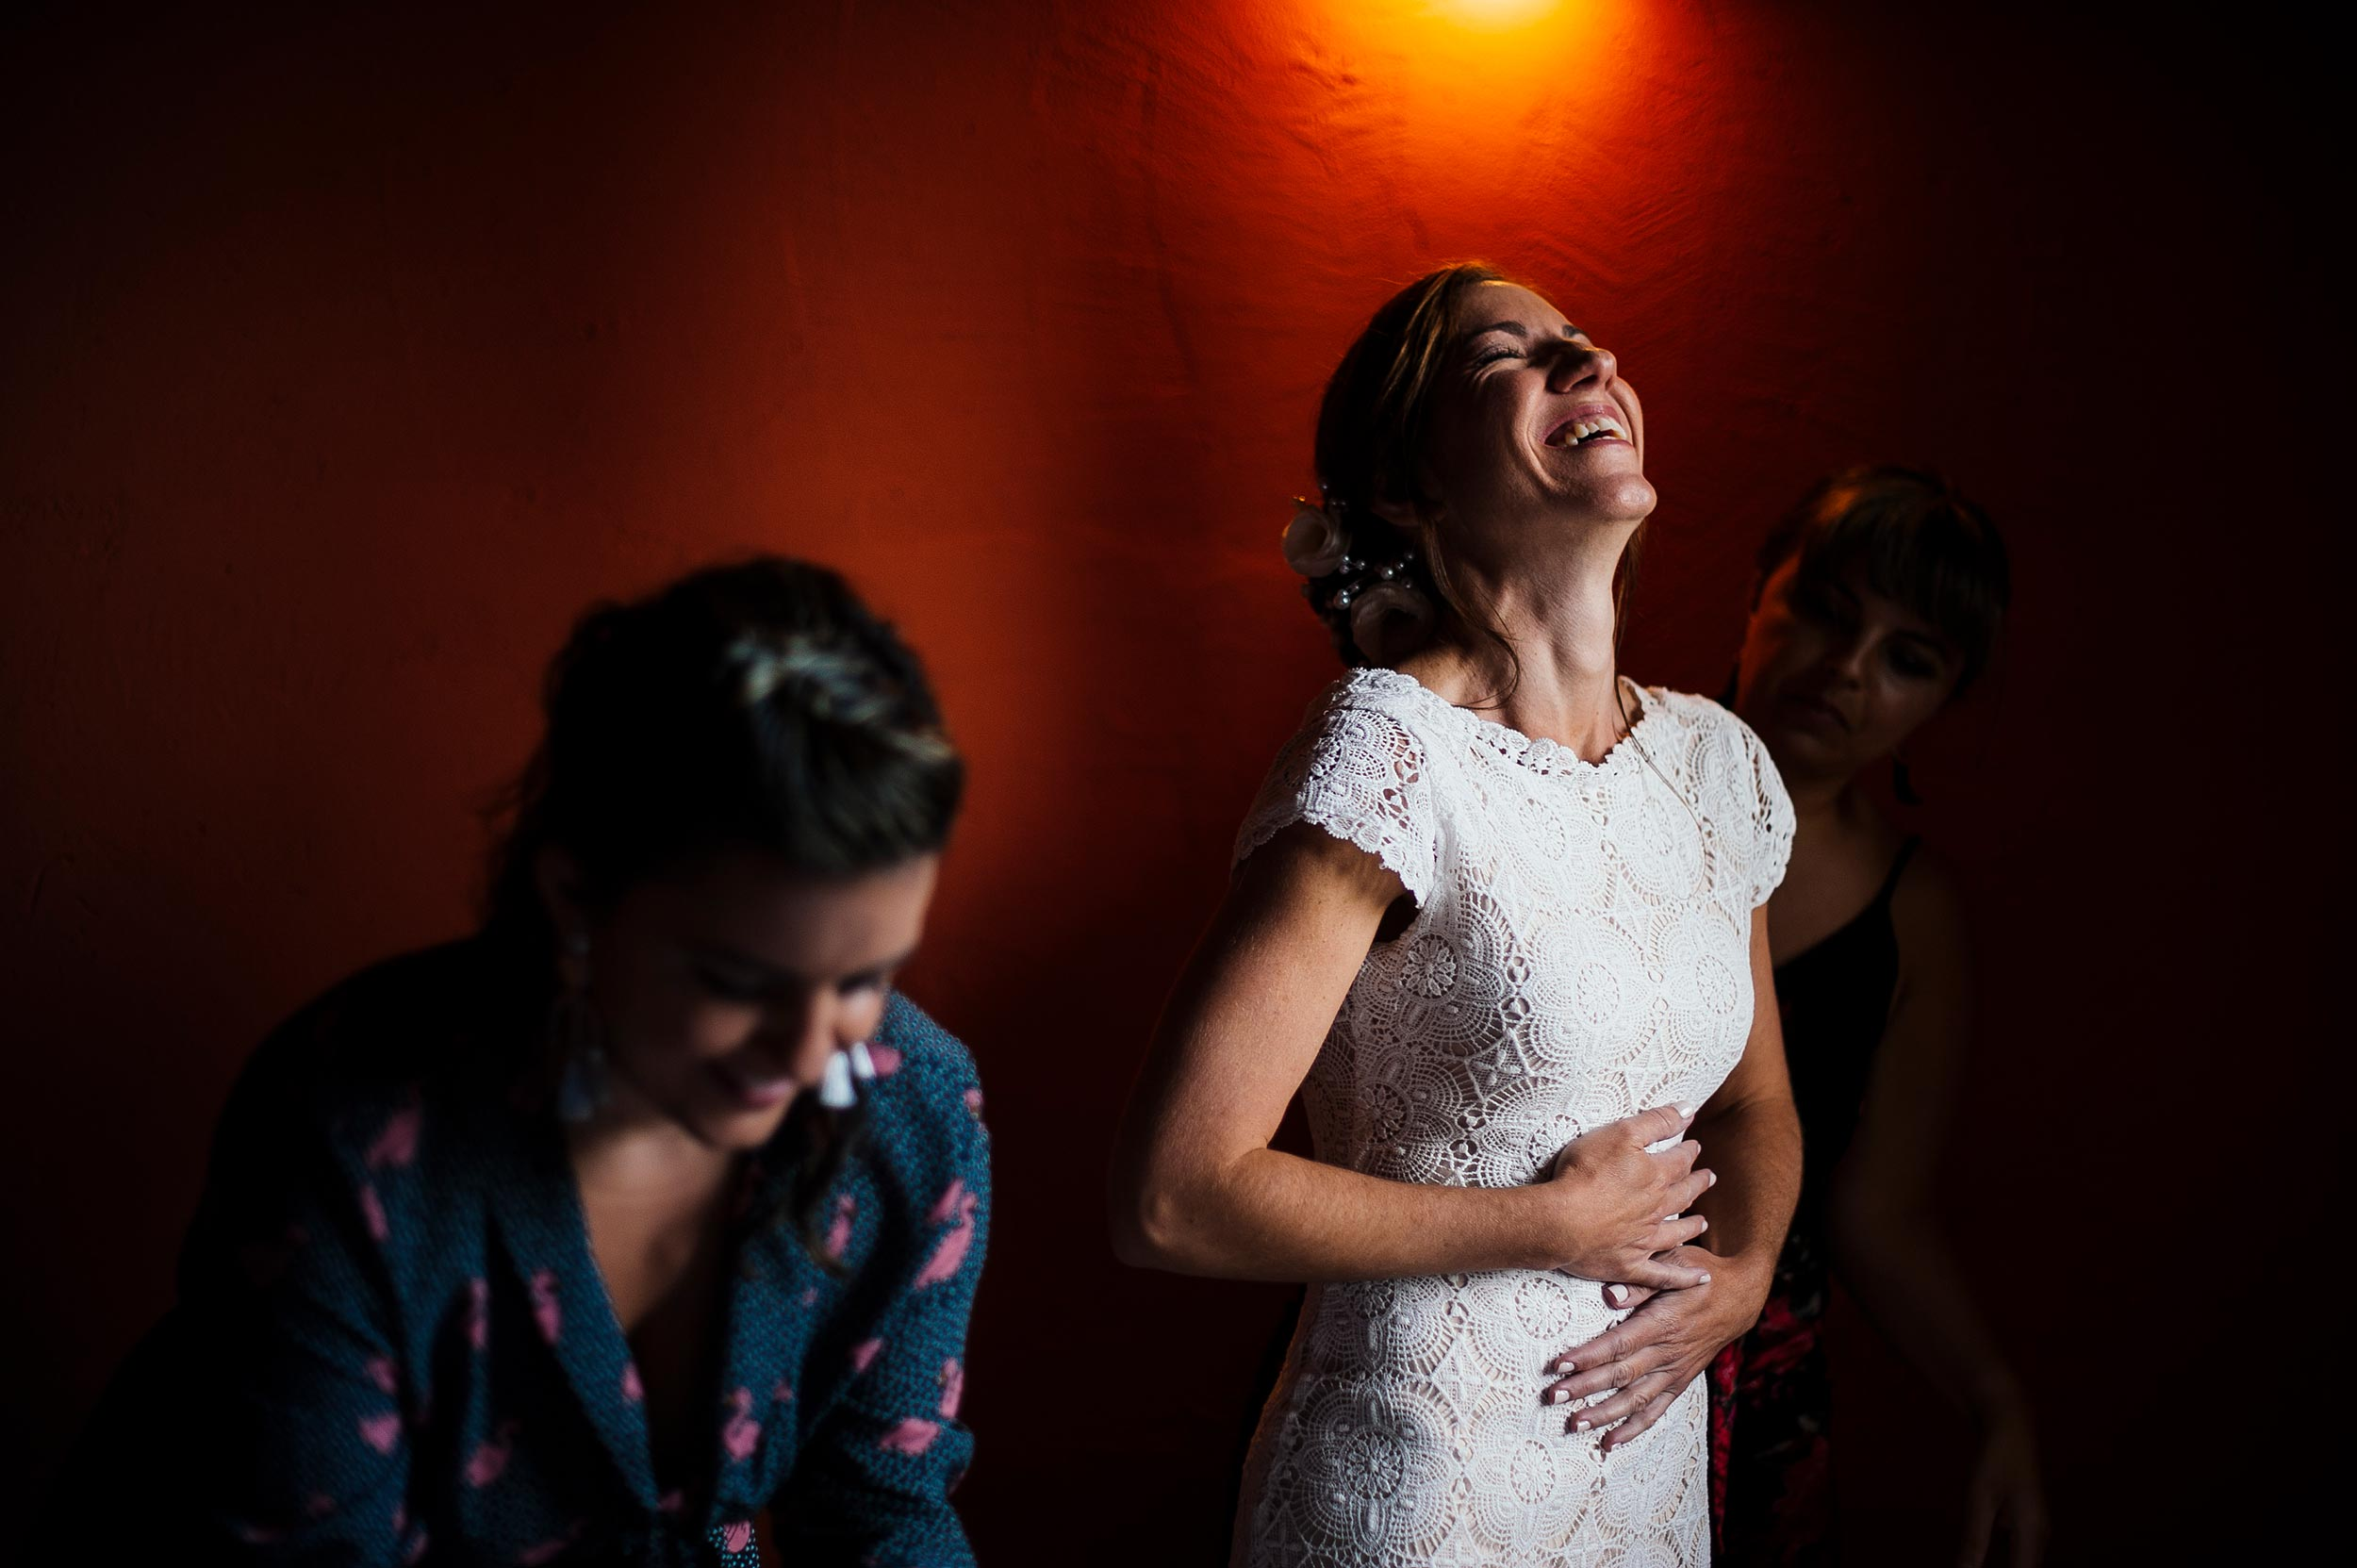 bride-getting-ready-against-red-wall-italian-wedding-reportage-by-Alessandro-Avenali.jpg